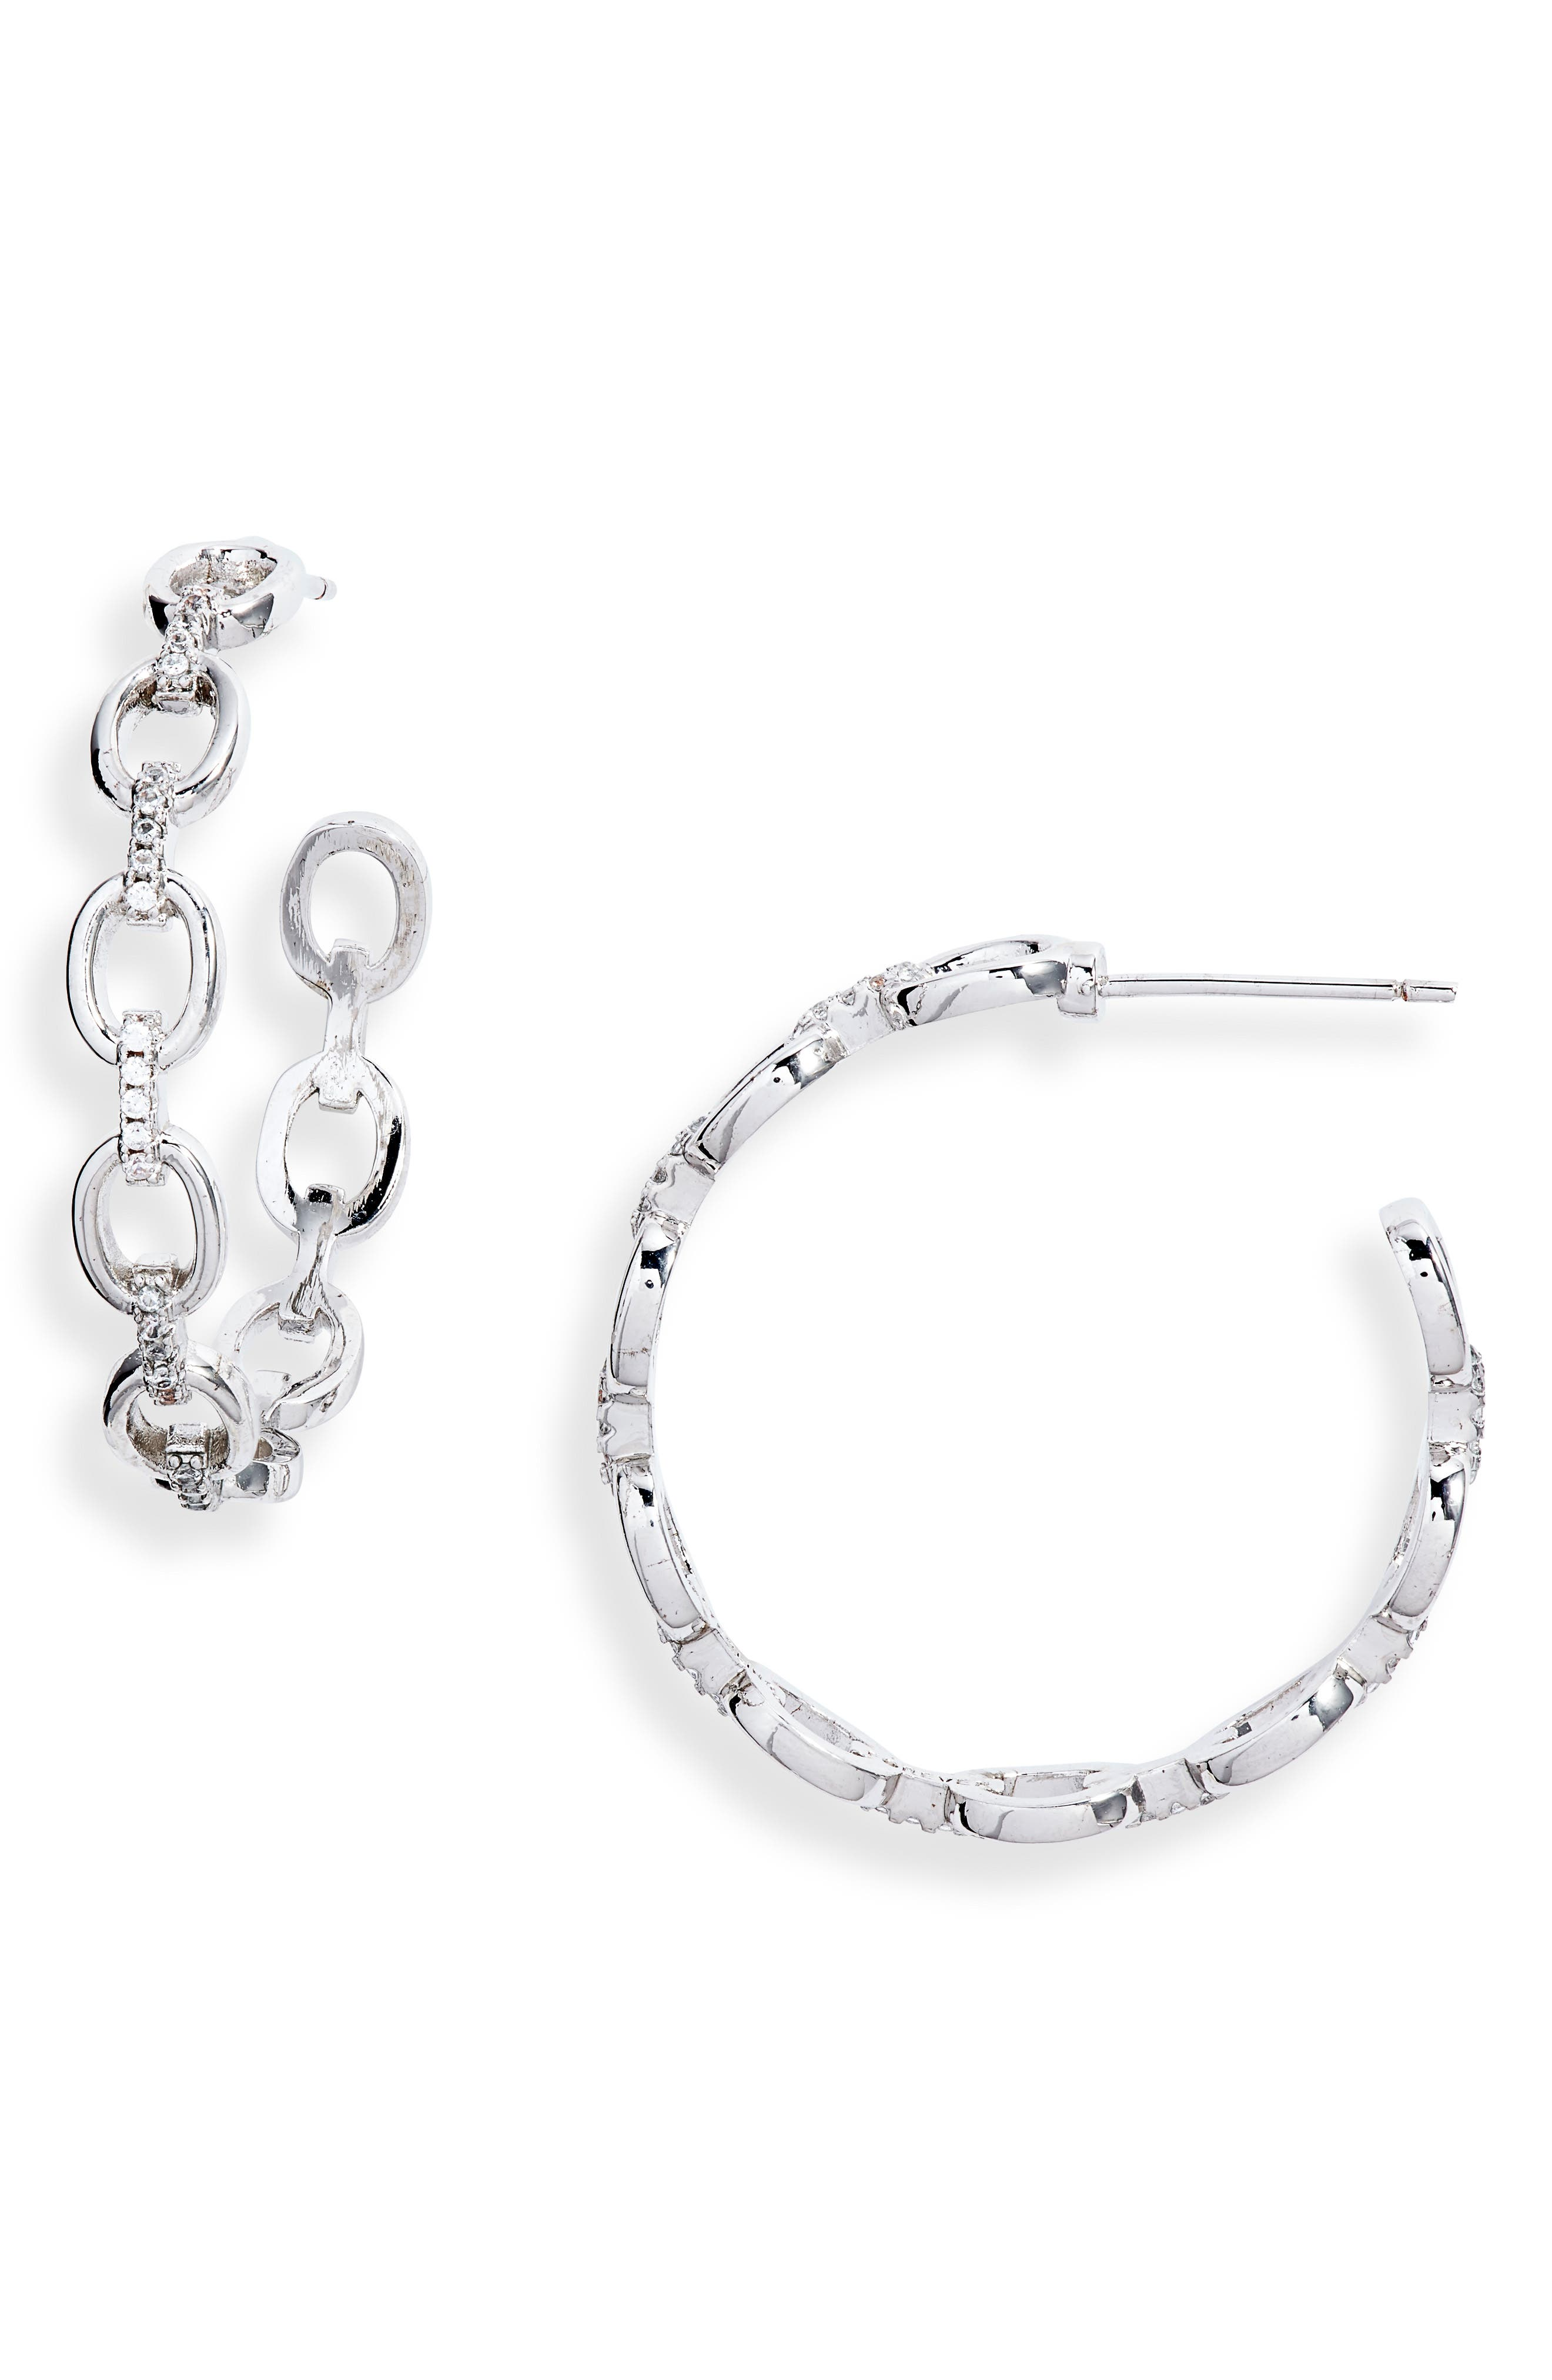 Sparkling cubic zirconia and chain-links update a pair of glamorous hoop earrings. Style Name: Sterling Forever Chain Hoop Earrings. Style Number: 5994880. Available in stores.